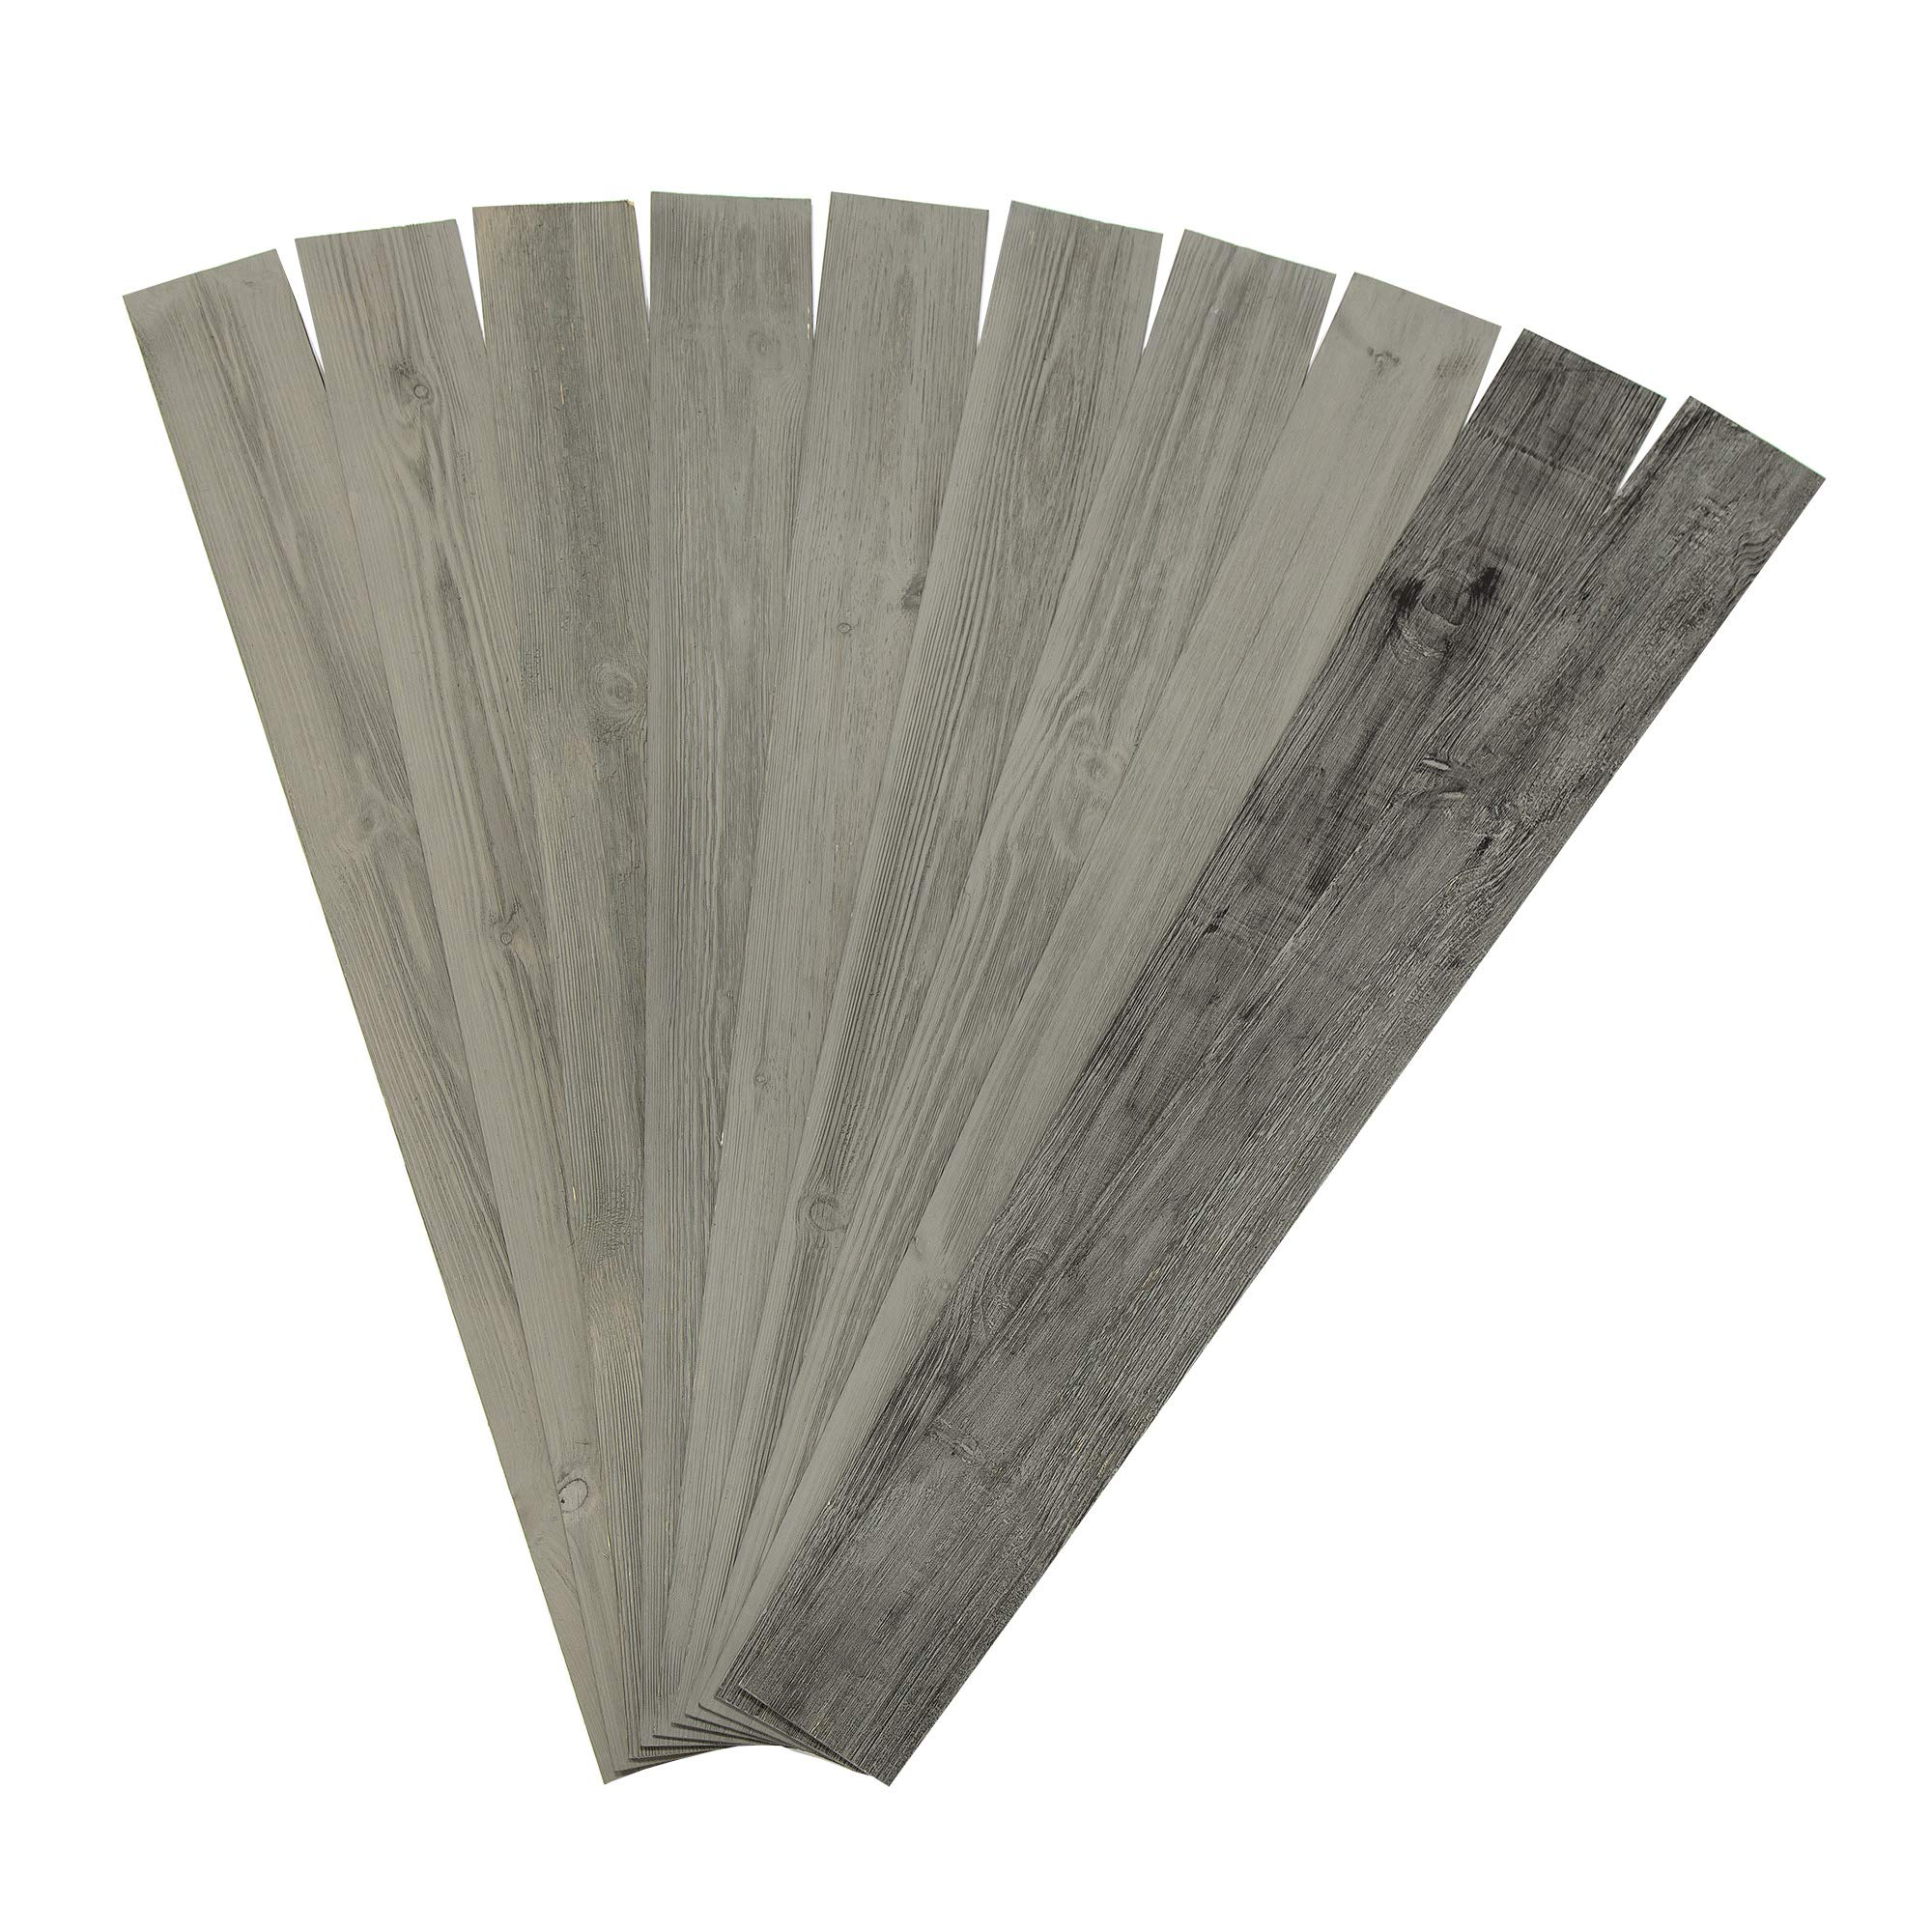 Rustic Grove Wood Planks (Mixed Gray-Dark)